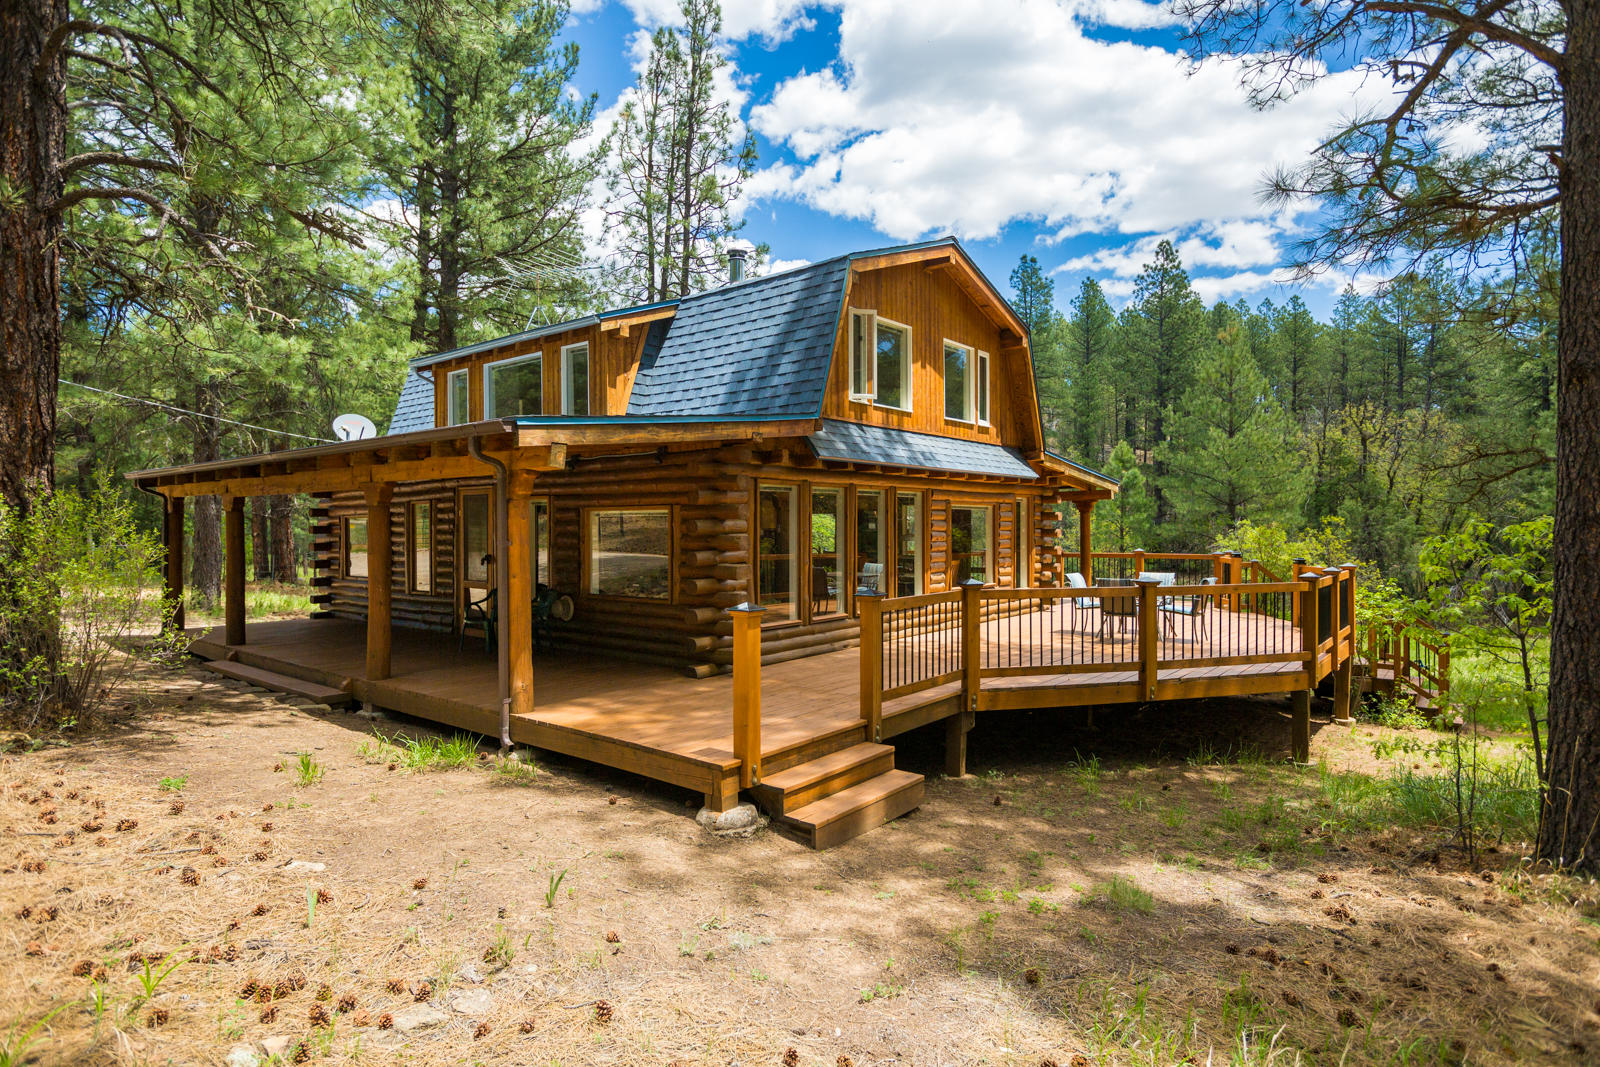 Step into this enchanted handcrafted Log Home with guest cabin! Rare once in lifetime offering. Breath in pine scented air. Hear the crow caw high above the canyon. Original owner & creator.  One of a kind, private sanctuary set amidst 11 acres of 'end of the road' solitude bordered by thousands of acres of National Forest in 4th of July Canyon, Manzano Mountains. A creek runs thru this lush getaway featuring a hand crafted, meticulously designed and maintained 3 bed Log Cabin Home, lovely Guest Cabin, restive front porch overlooking the creek plus a serious Workshop, heated & A/C. This could be your full time home or weekend retreat getaway; 1 hr 15 min from Big I of ABQ. Work from home; Hi Speed Internet. Scenic hiking, wildlife and natural beauty abound. Shown by appointment.